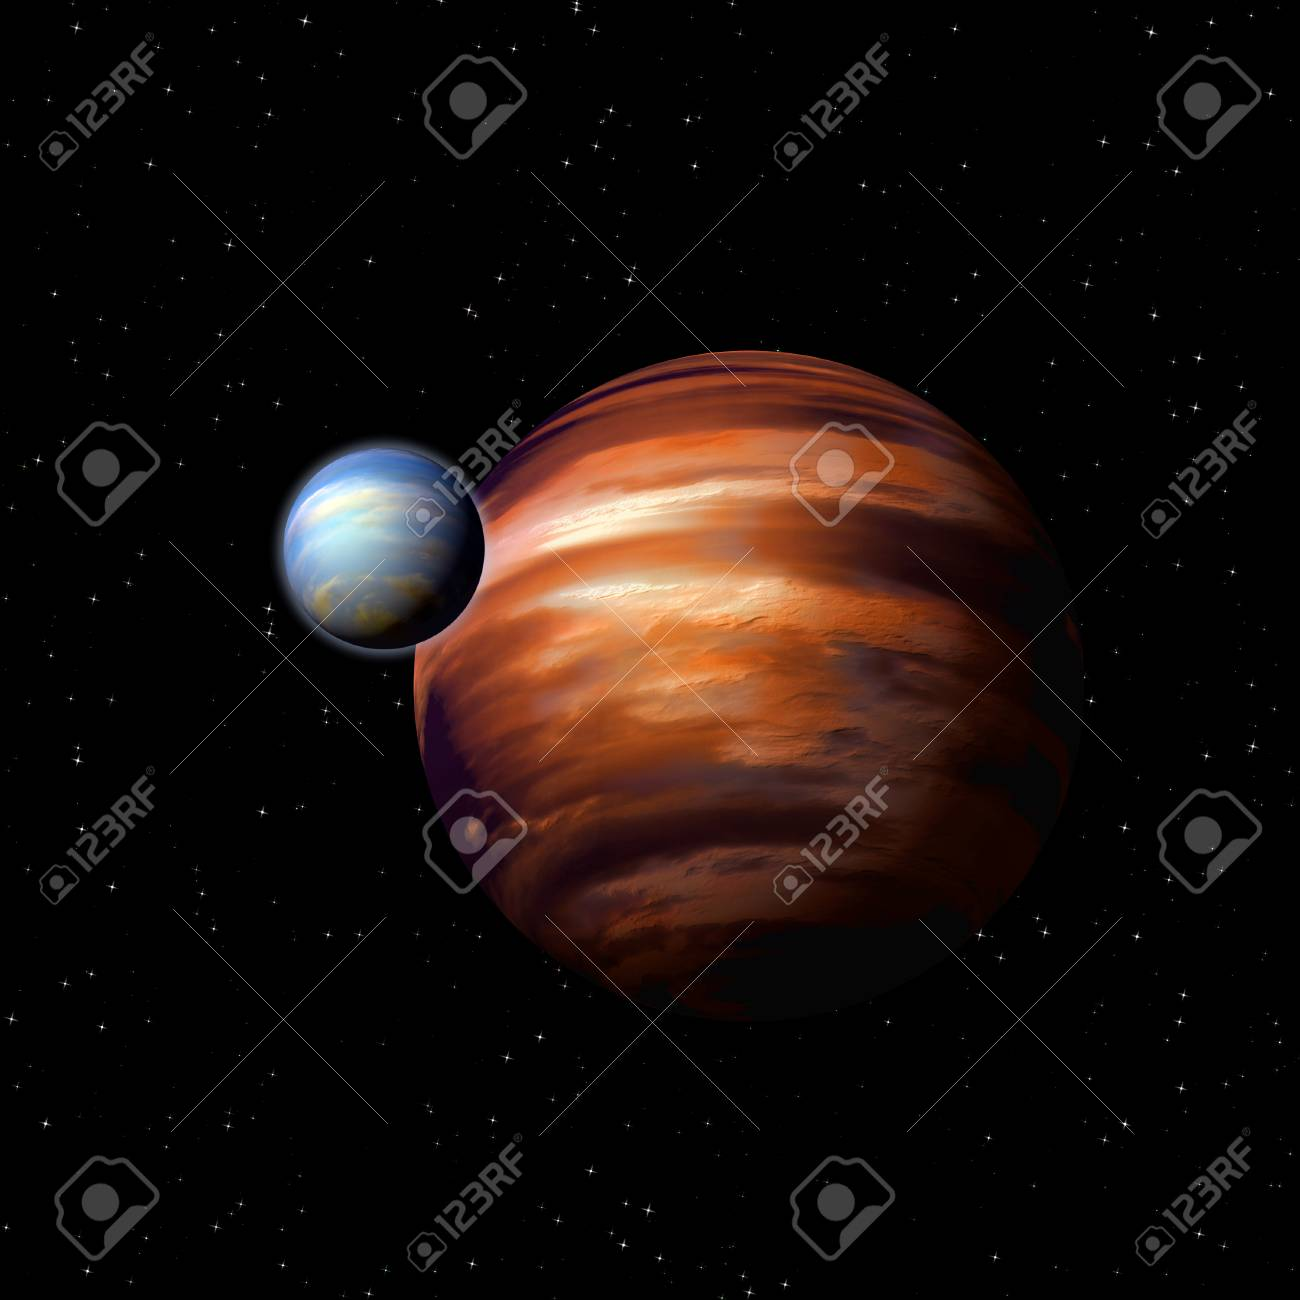 Planets in deep space, abstract sci-fi illustration Stock Photo - 24691476